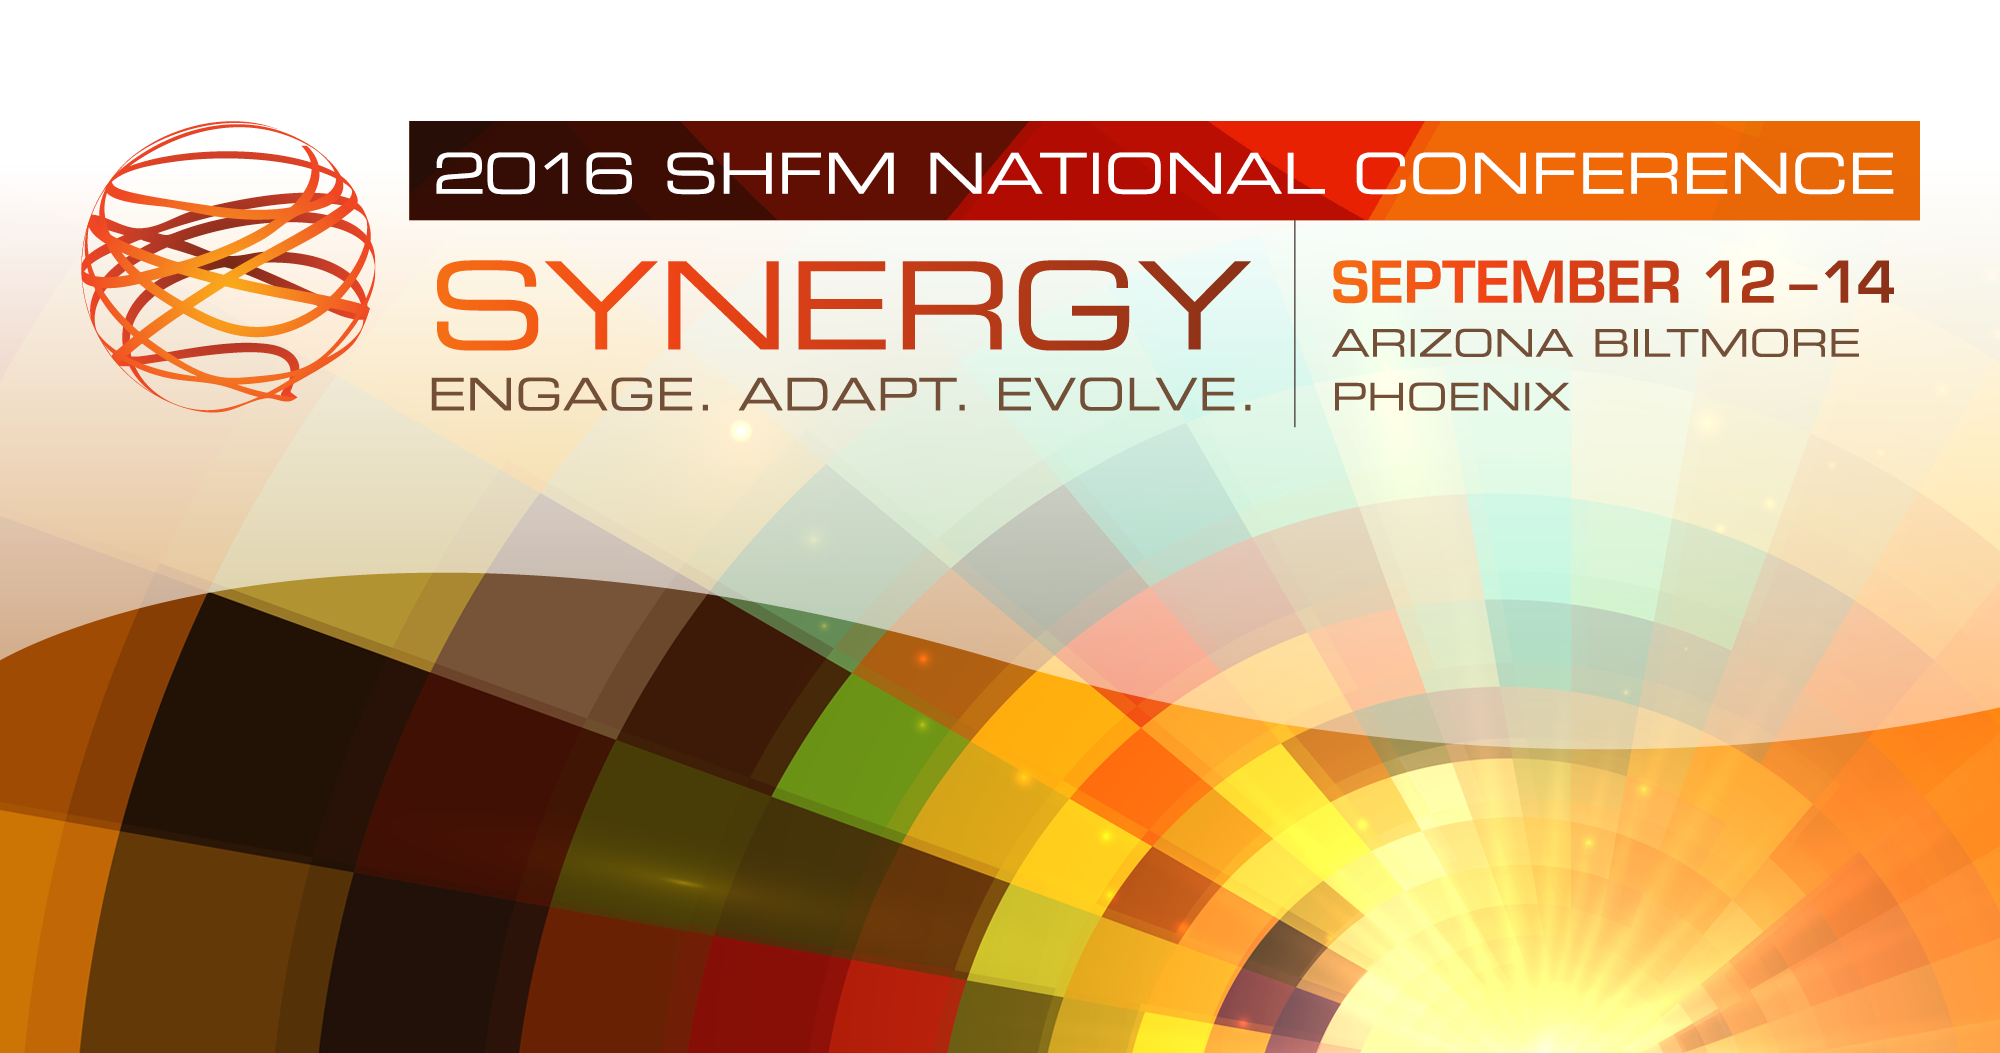 SHFM 2016 Conference